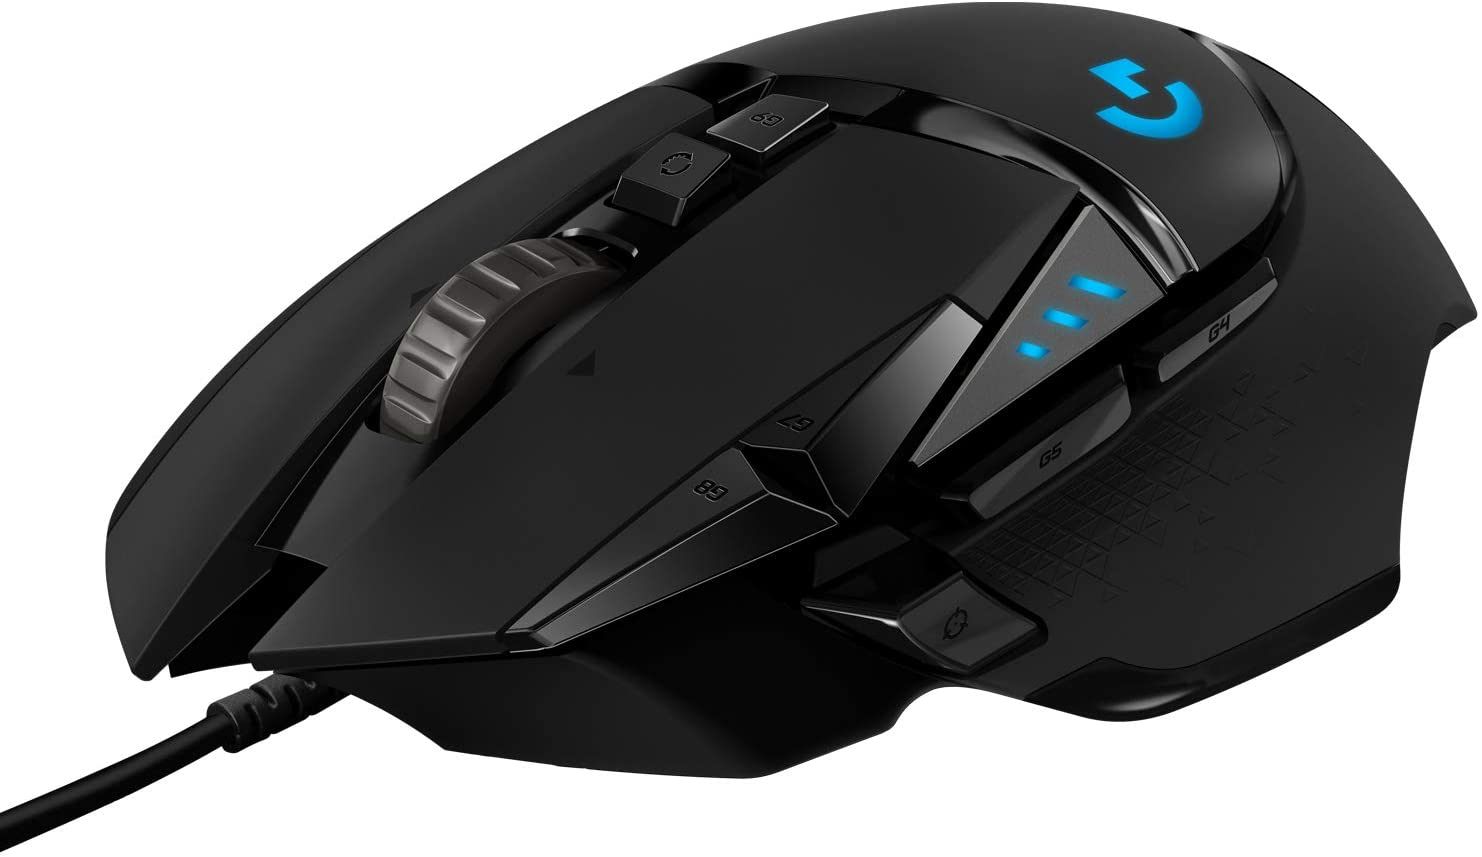 10 Best Gaming Mouse Under $50 - 2021 Buying Guide 4